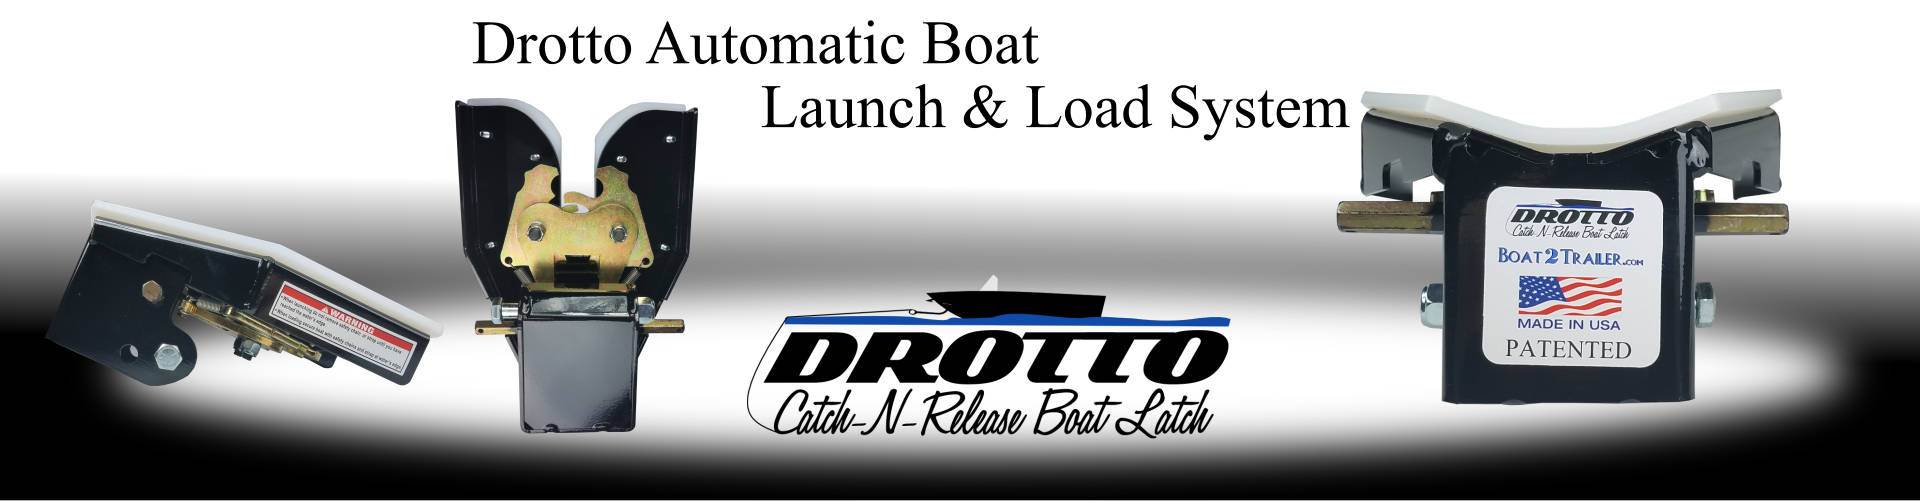 Drotto Automatic Boat Latch